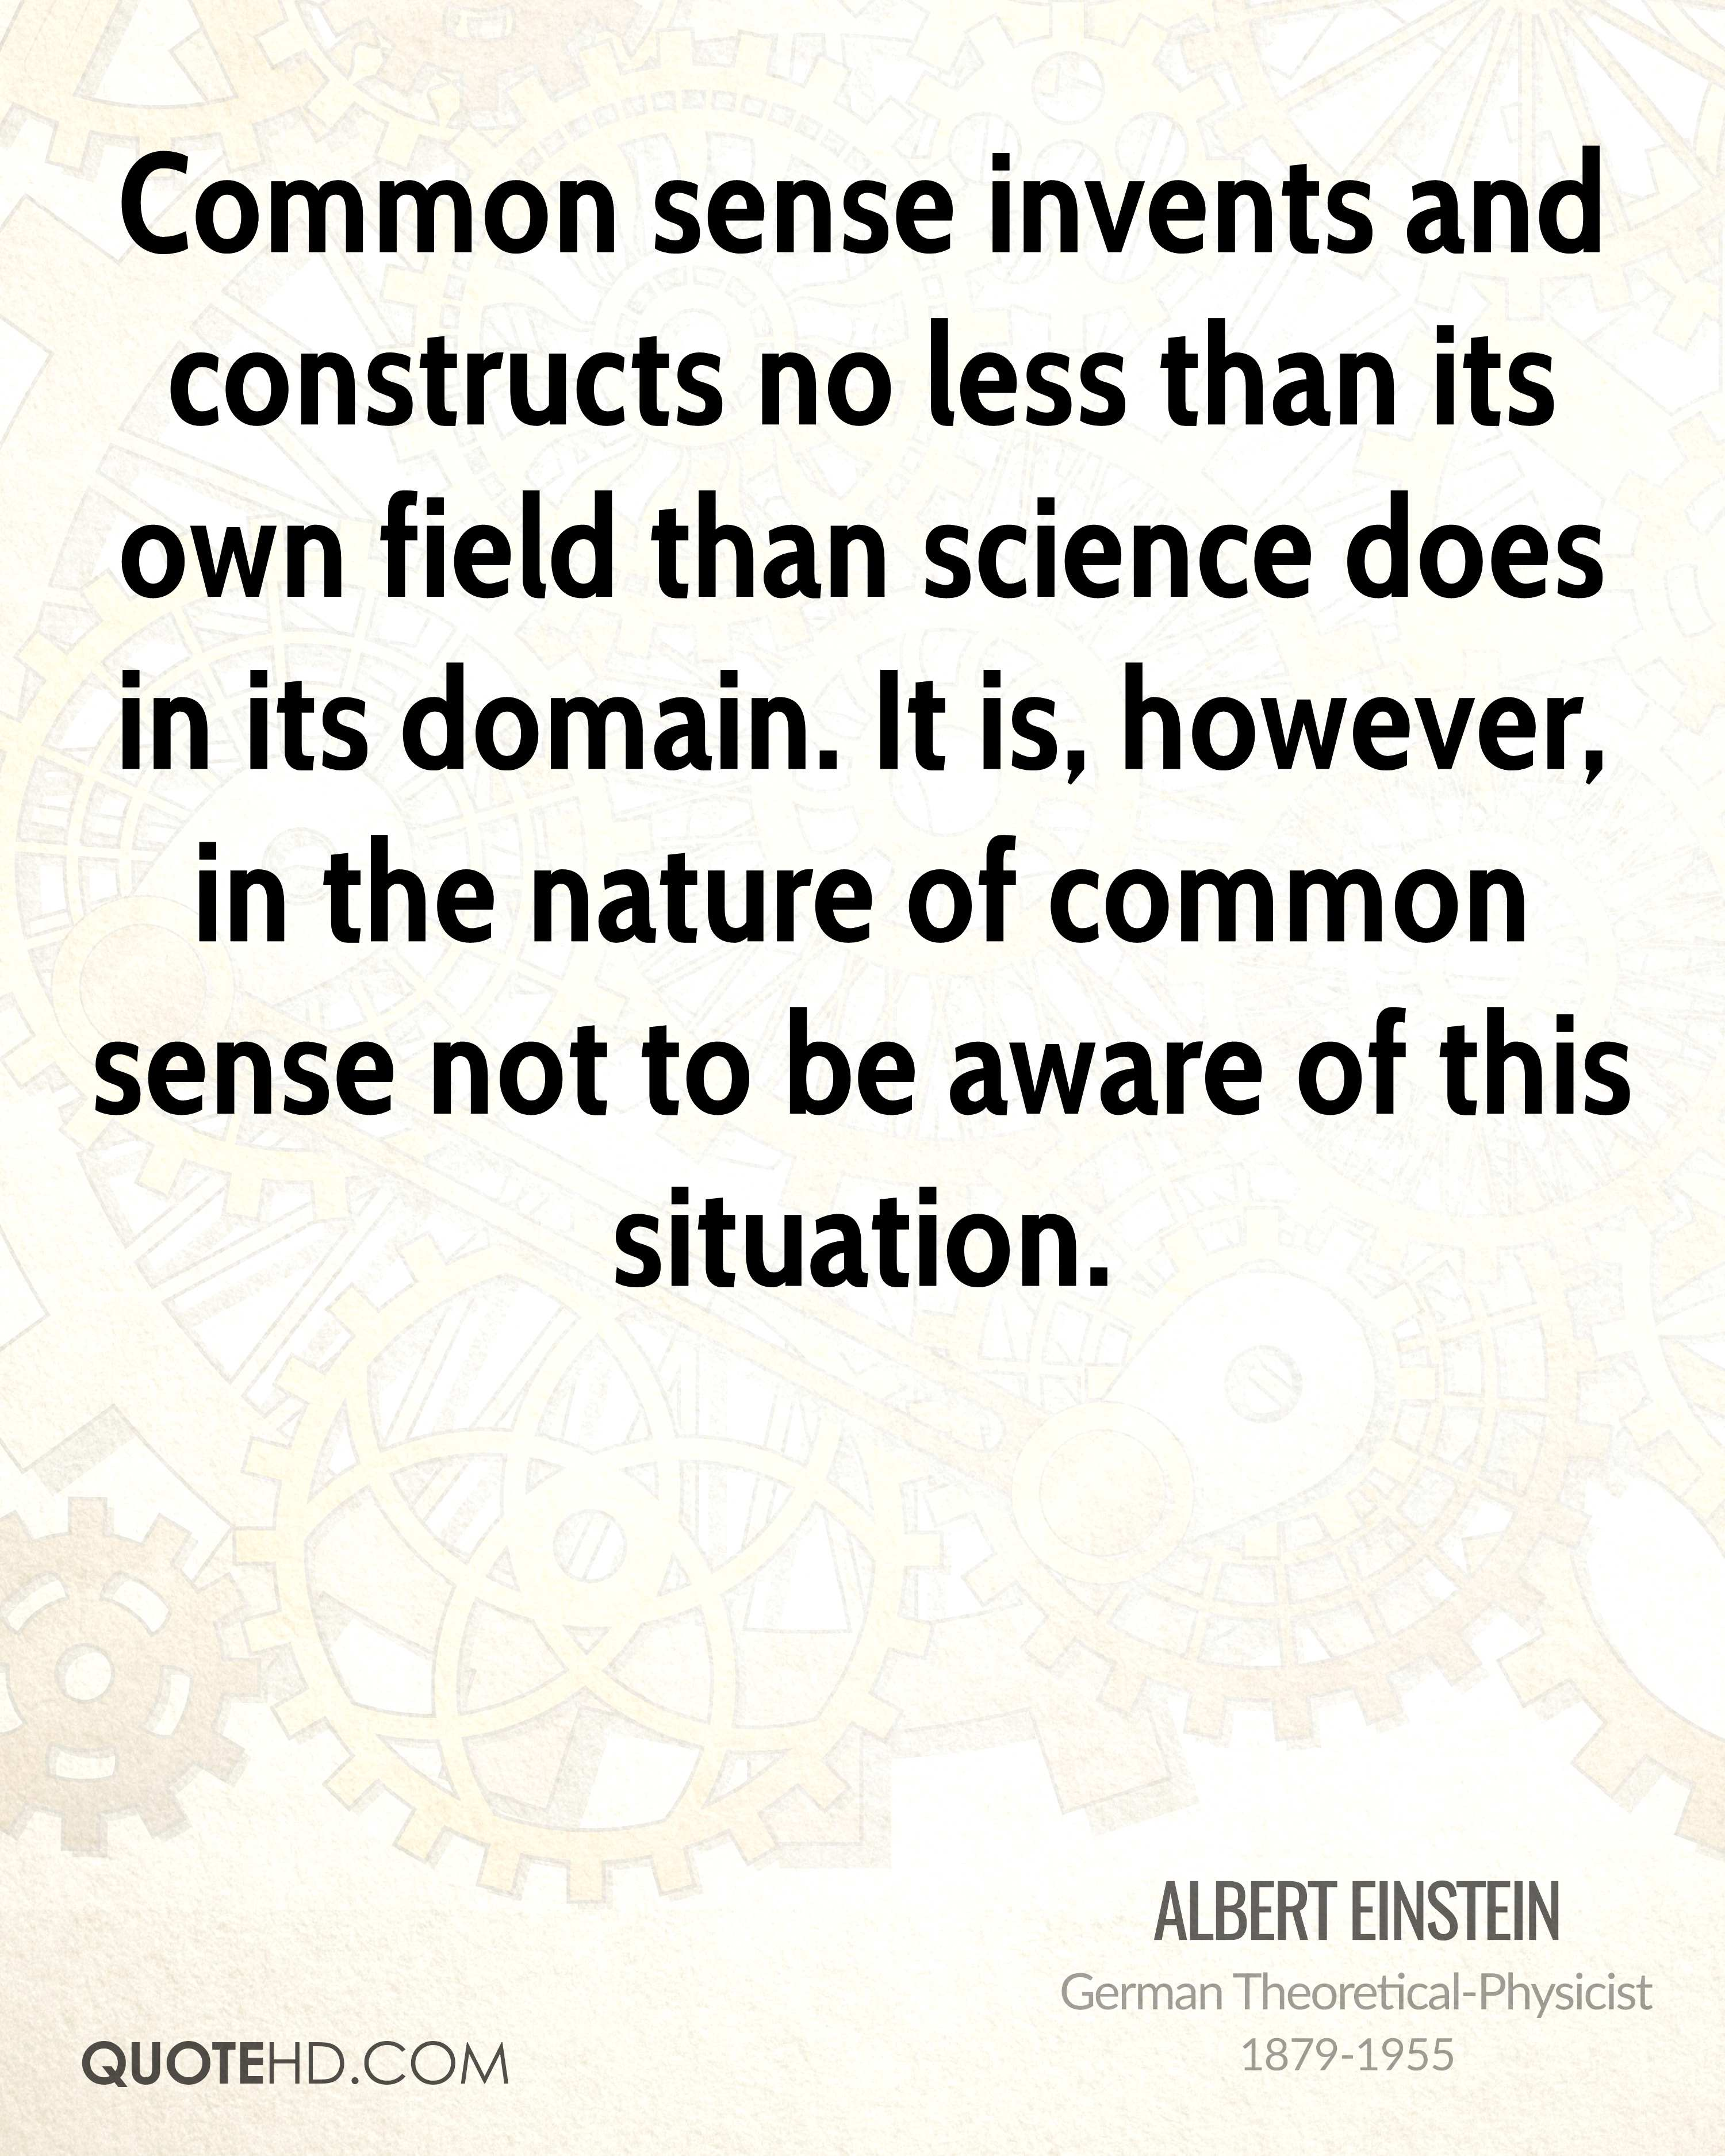 Common sense invents and constructs no less than its own field than science does in its domain. It is, however, in the nature of common sense not to be aware of this situation.